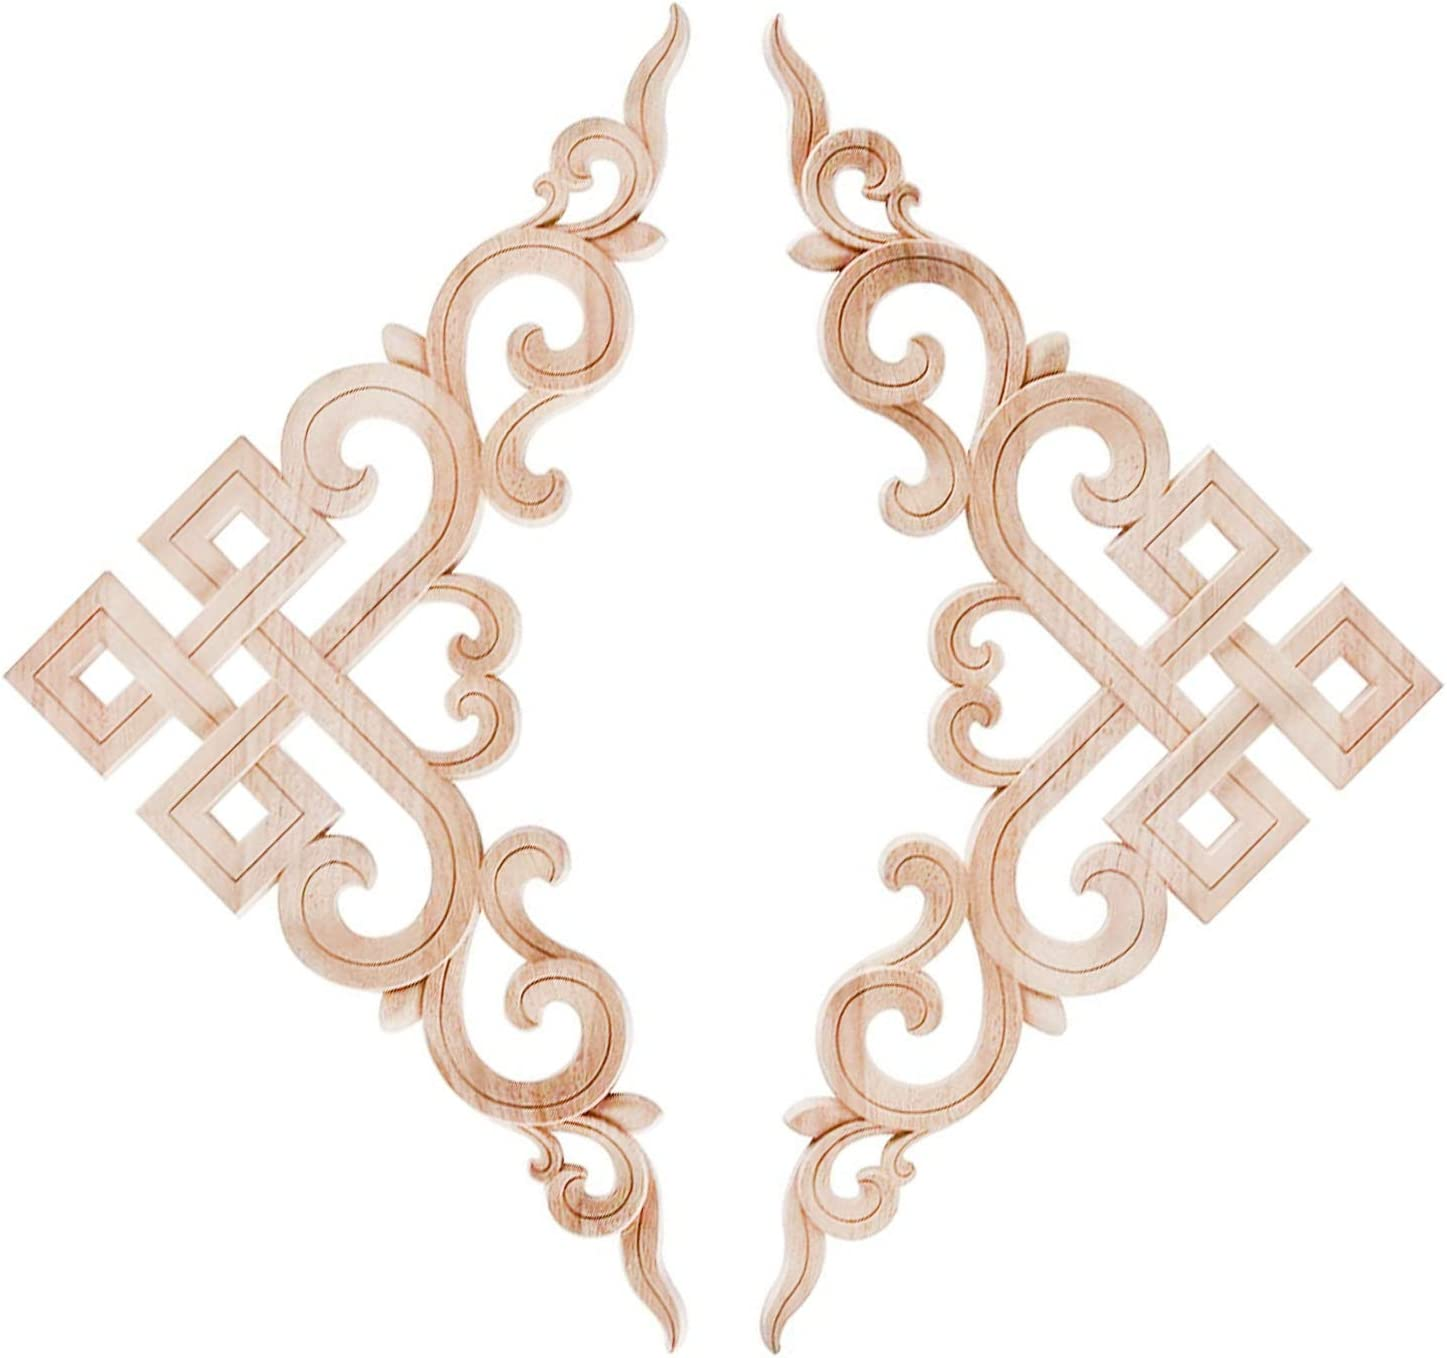 Beoot 2PCS Wood Carved Decal Corner Onlay Applique Frame Furniture Wall Unpainted for Home Cabinet Door Decor (02, 20x20cm/7.87x7.87inch)